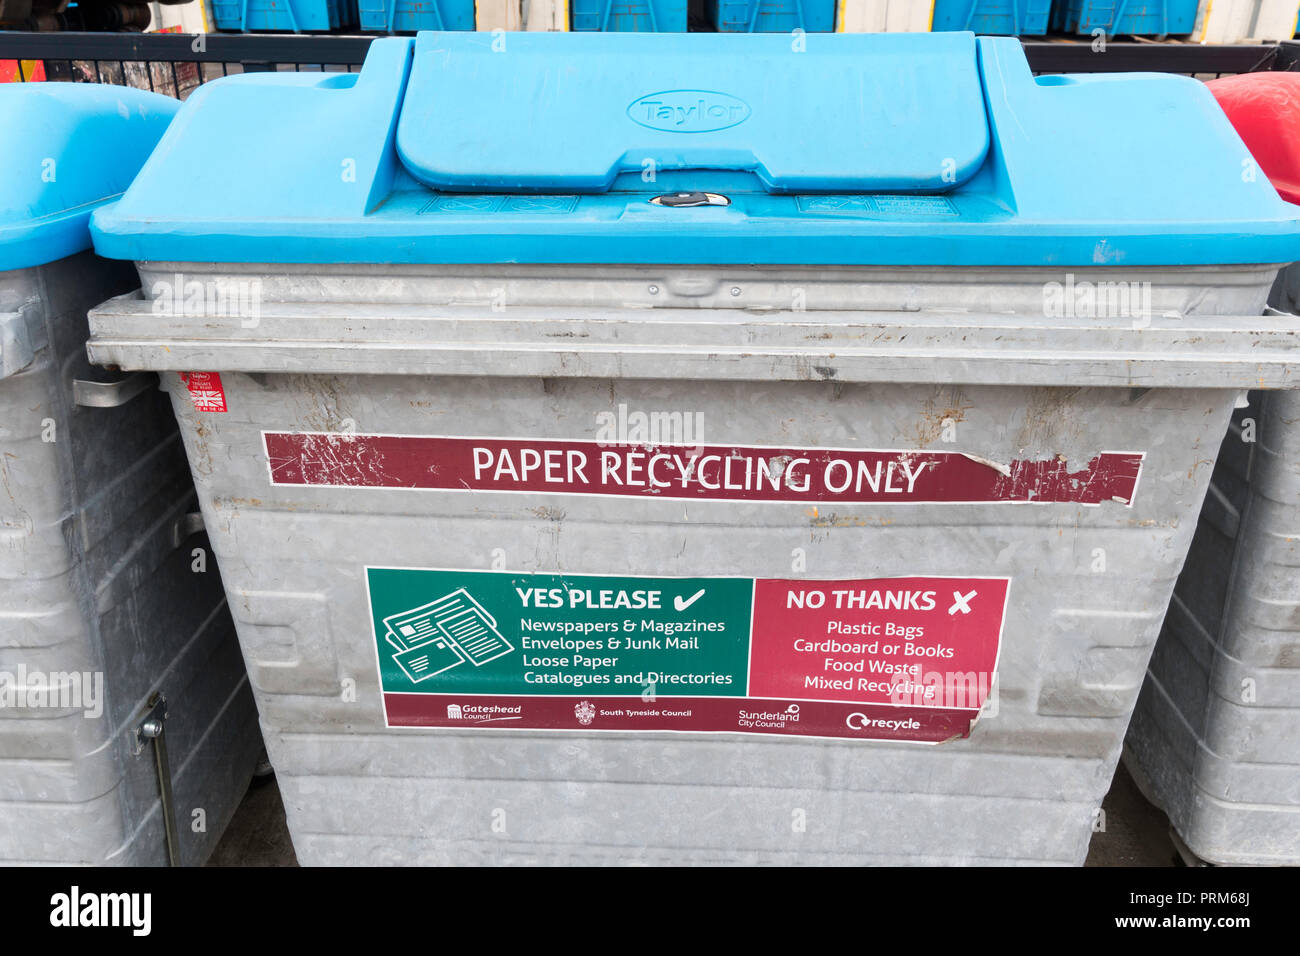 Paper Recycling Bin at the Campground waste and recycling centre in Wrekenton, Gateshead, England, UK - Stock Image